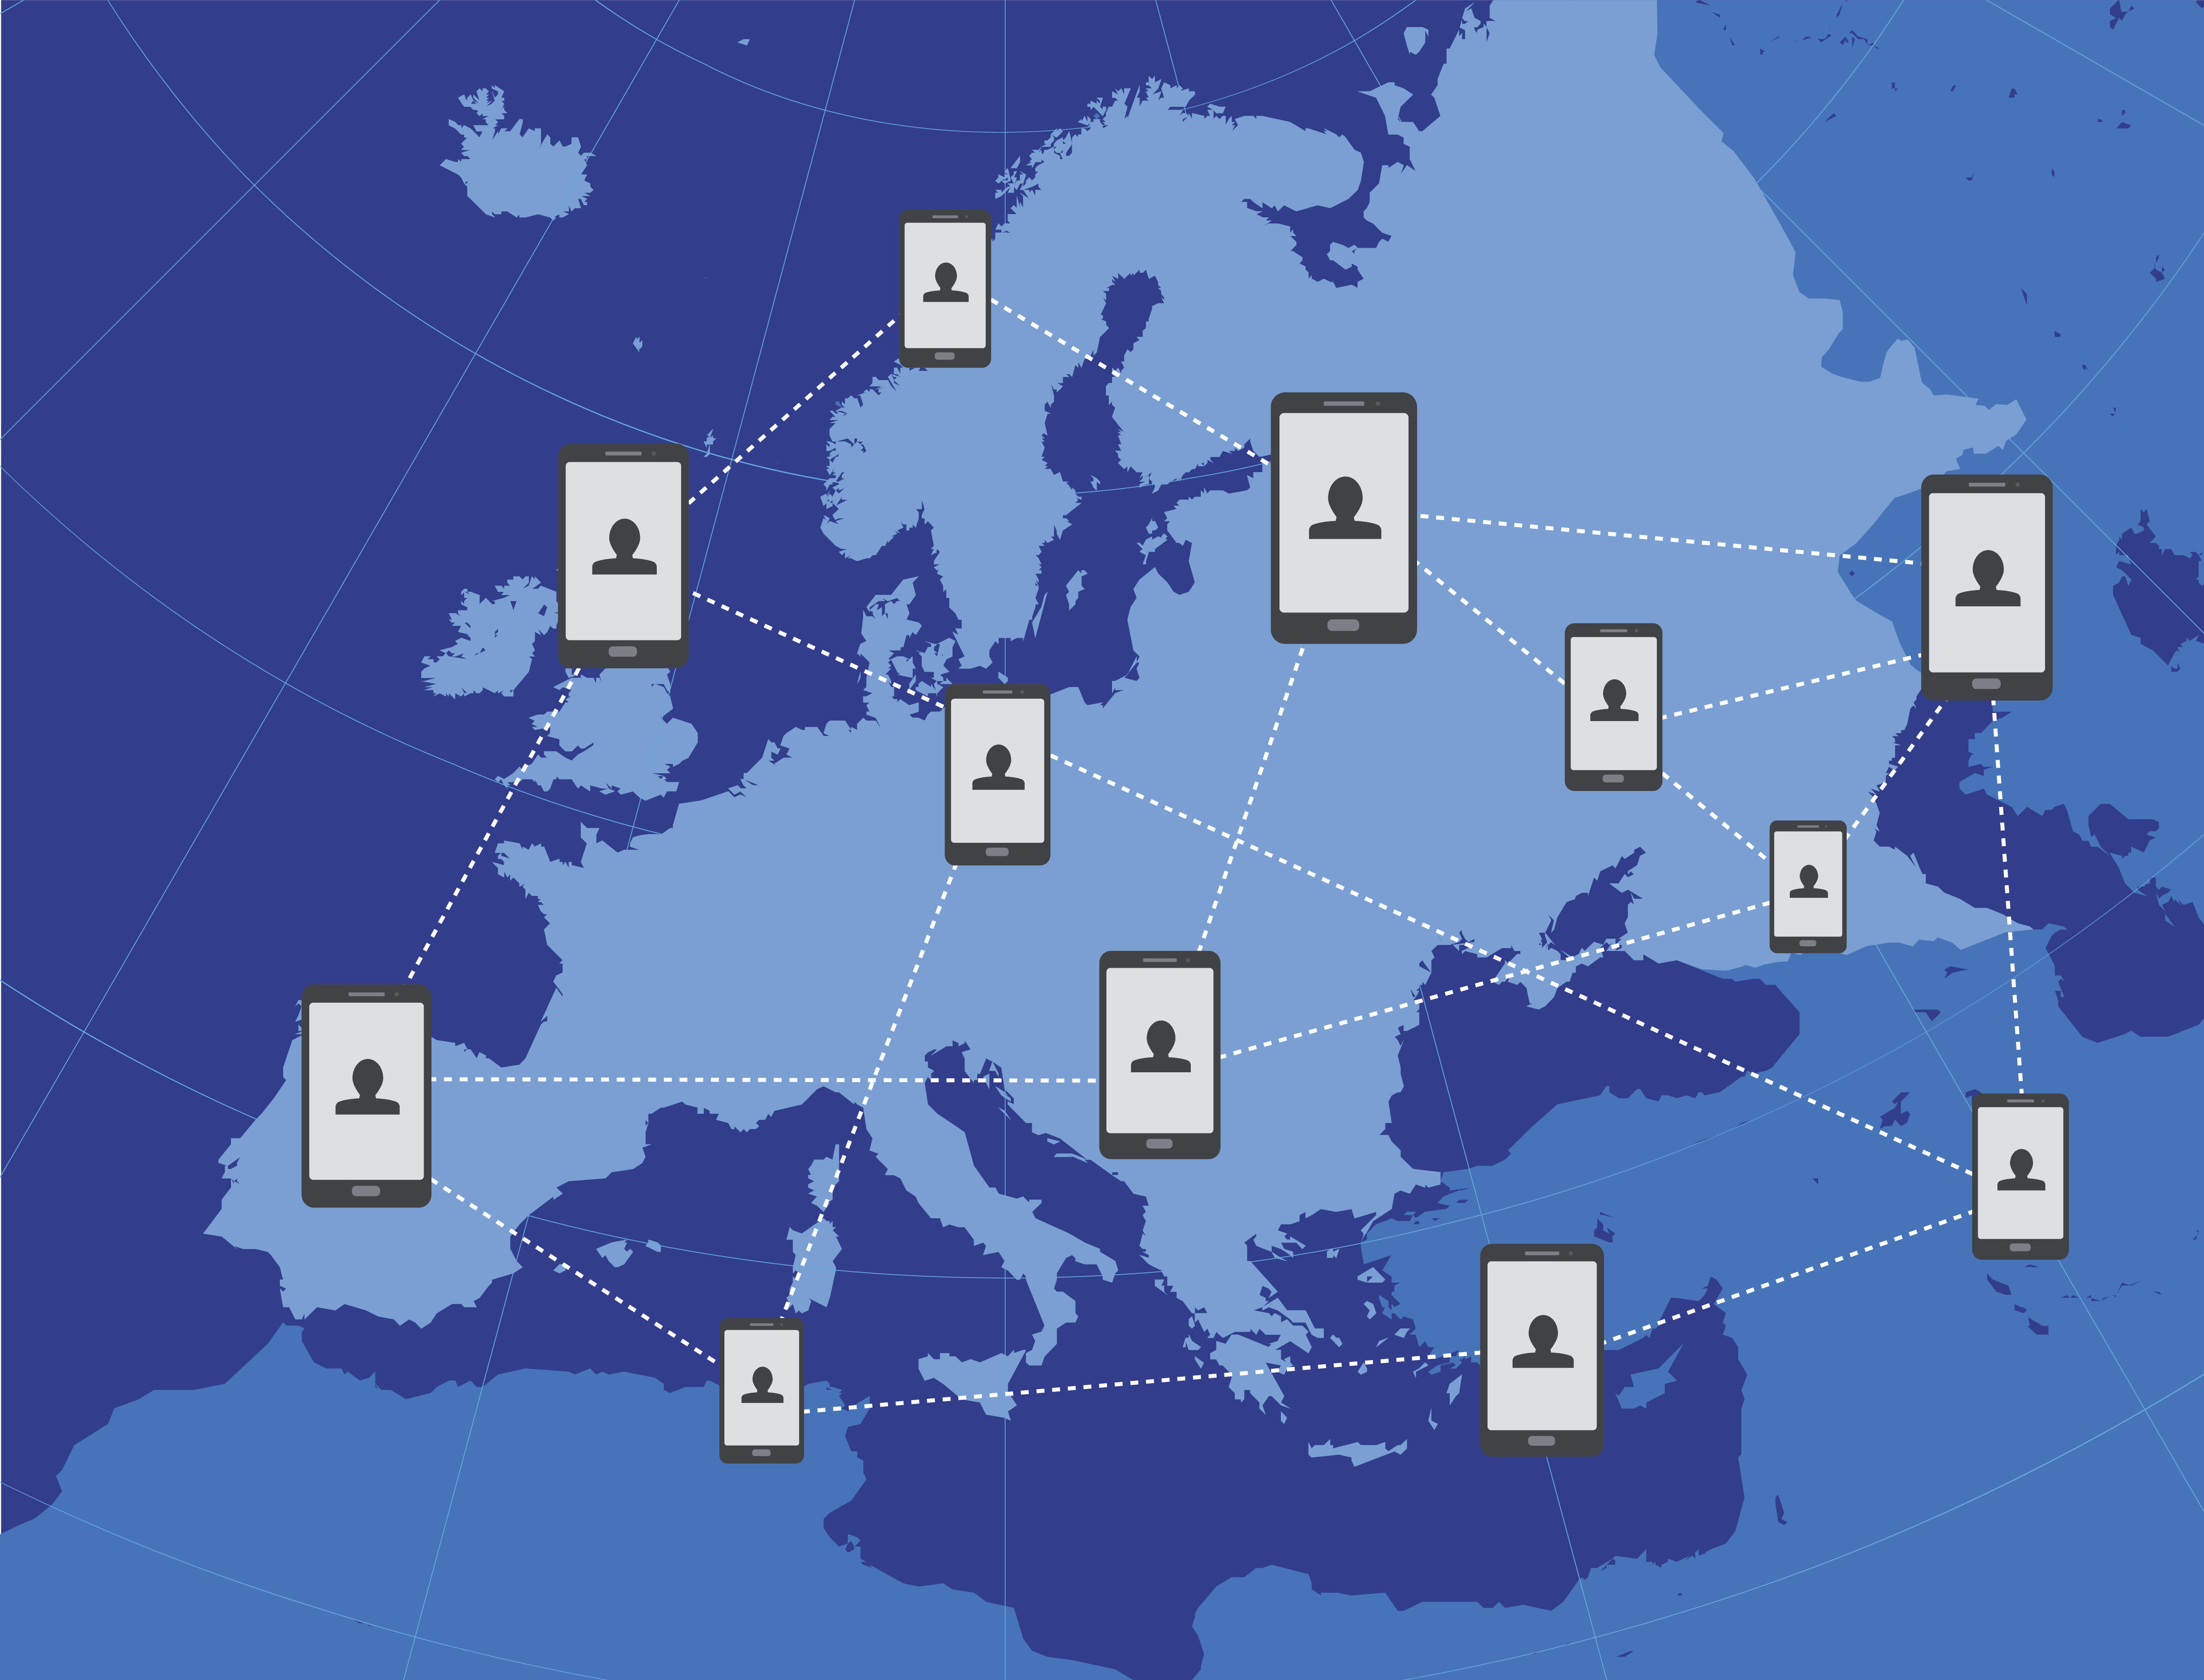 Cloud and smartphones over map of Europe